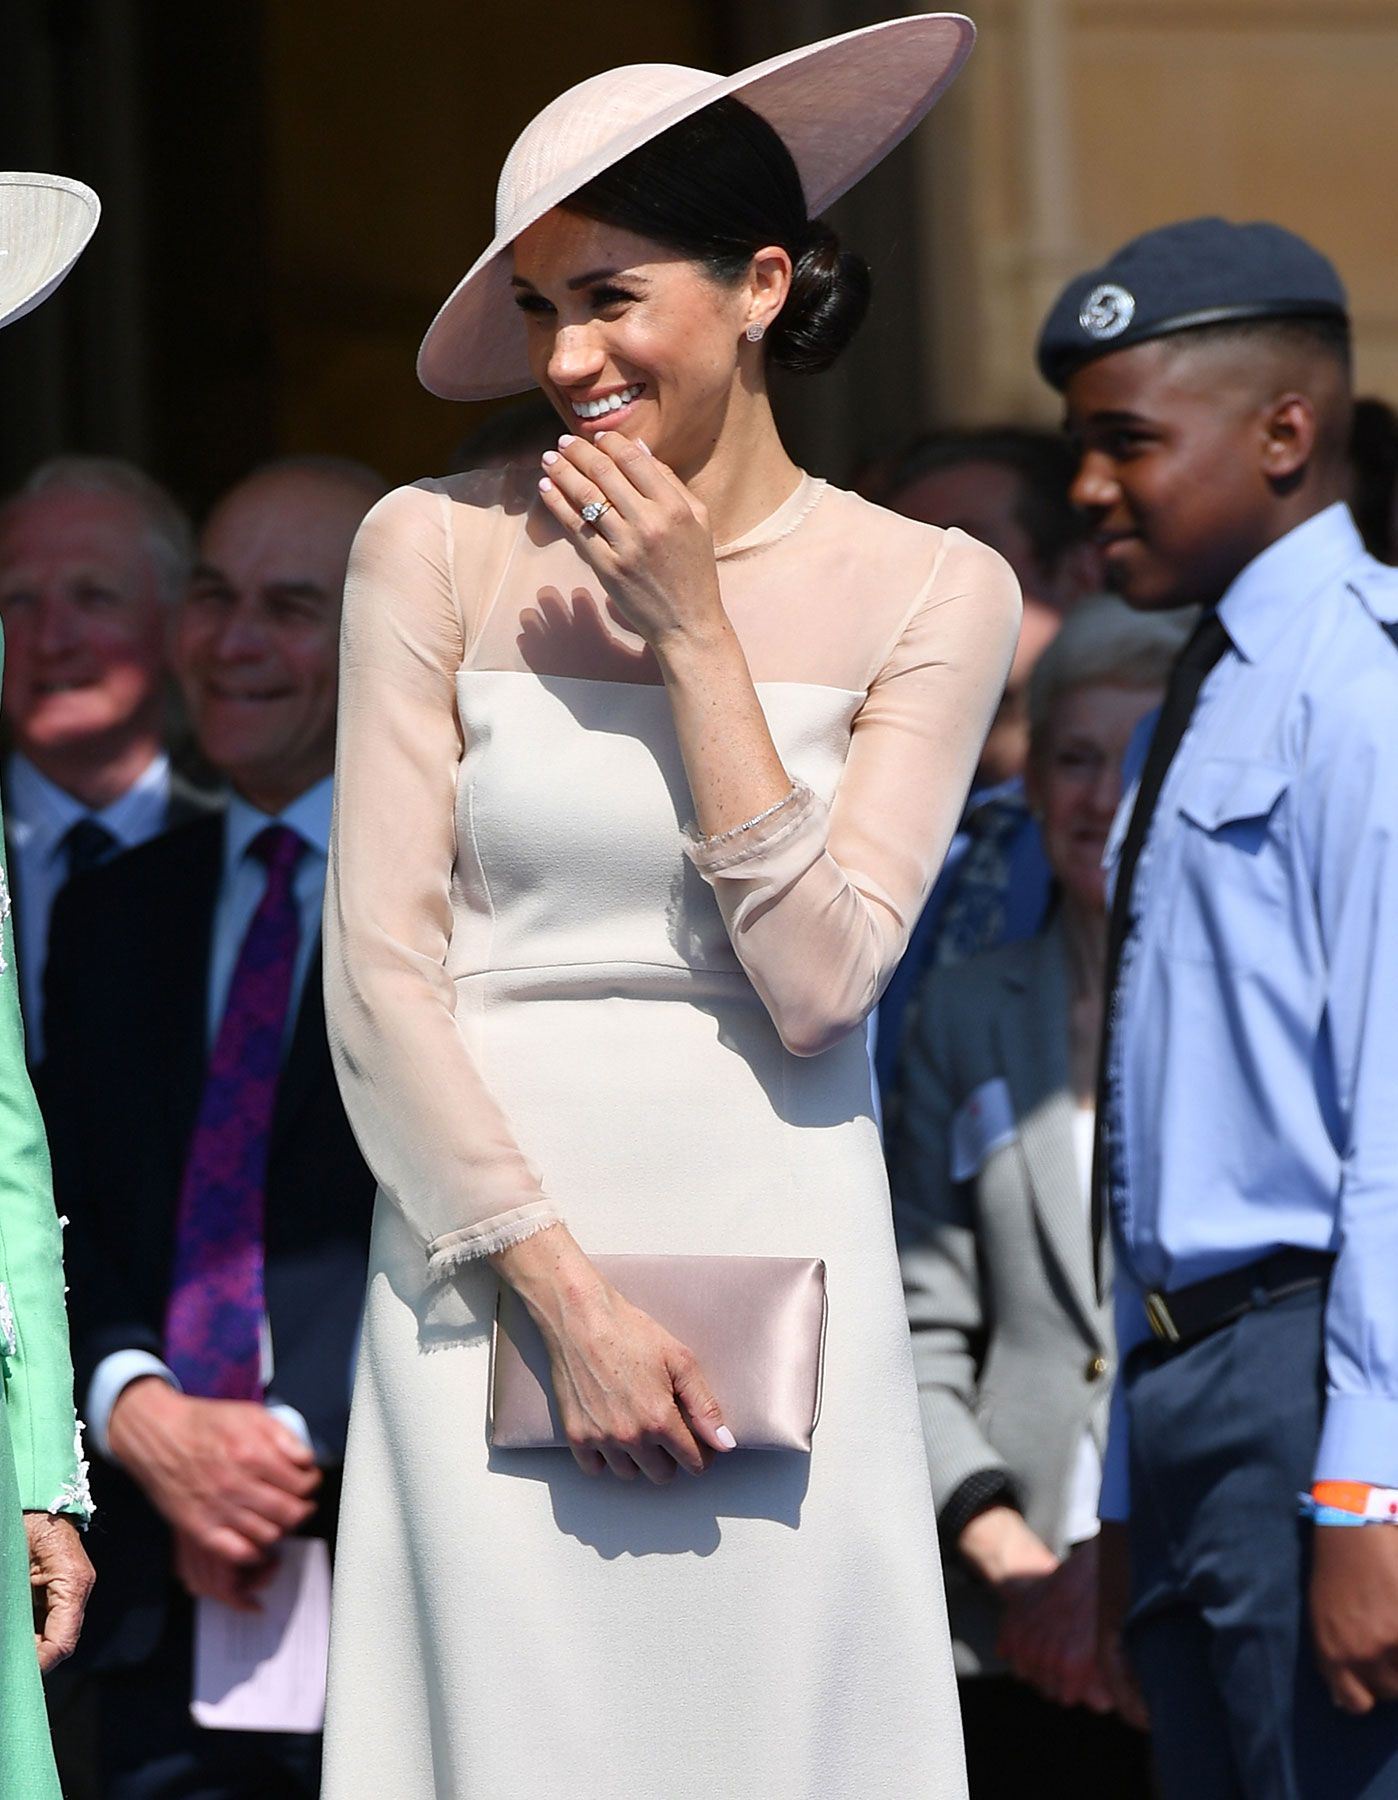 Meghan Markle, Duchess of Sussex attends The Prince of Wales' 70th Birthday Patronage Celebration